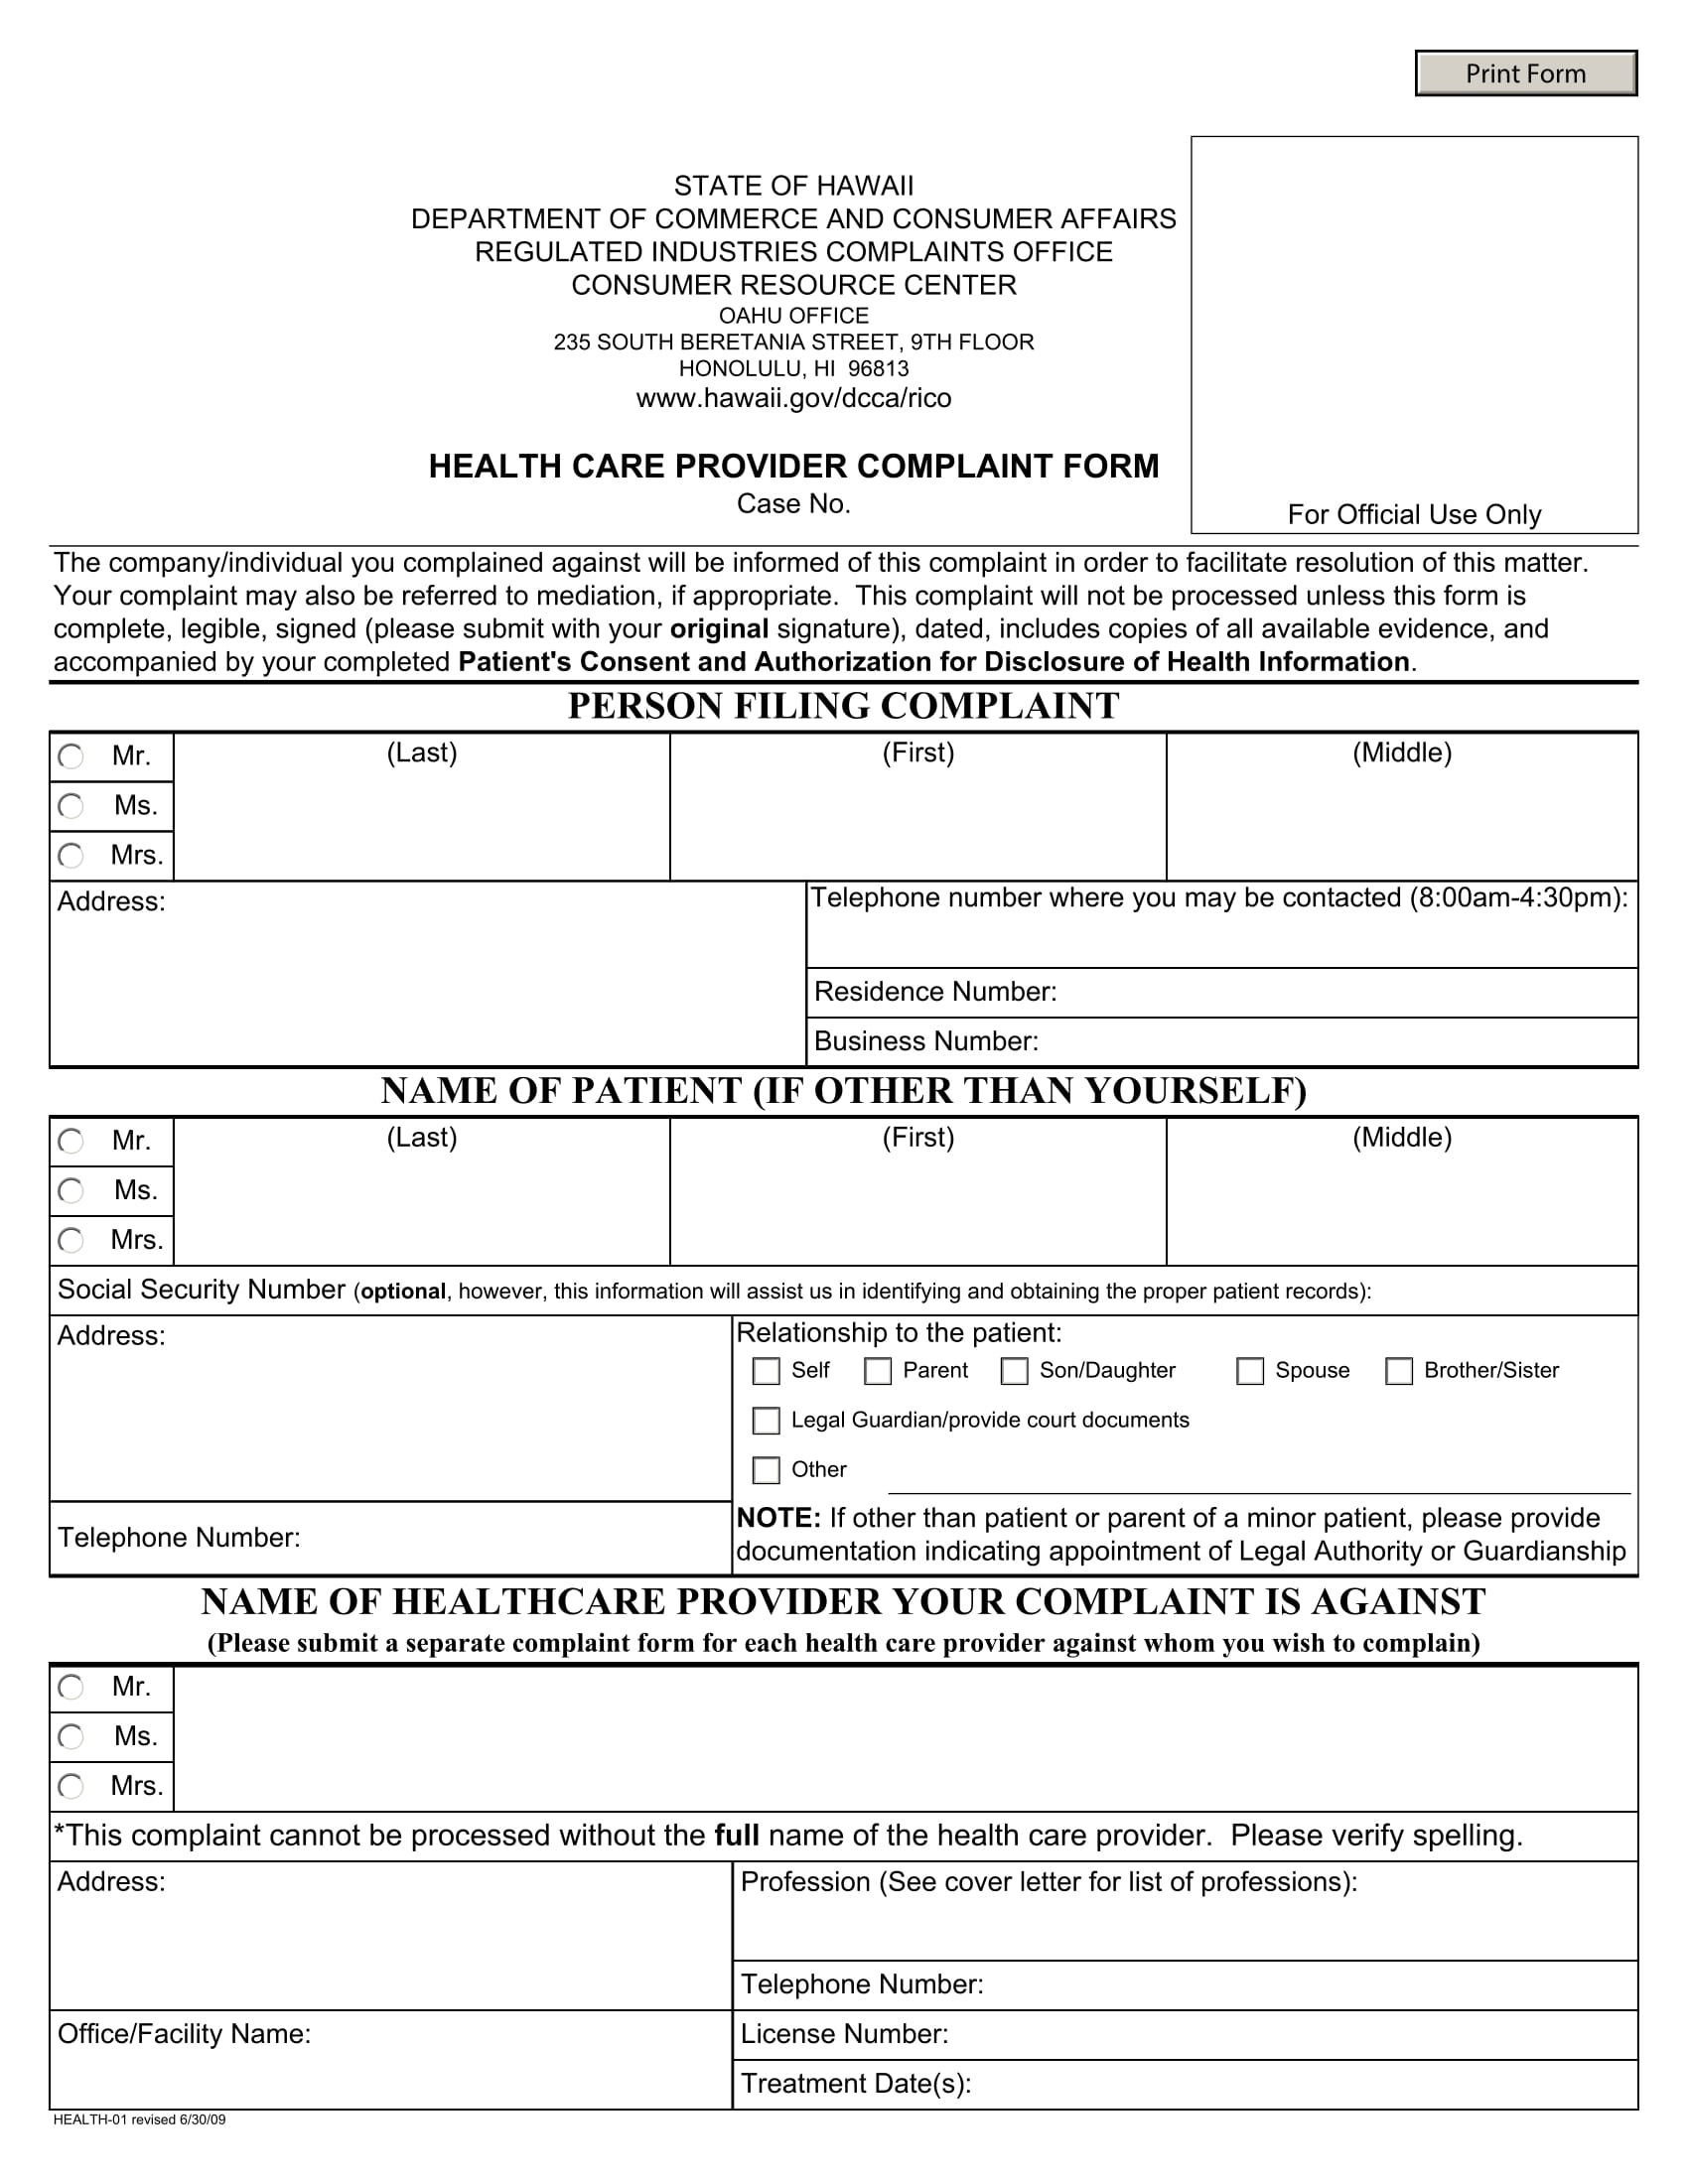 health care provider complaint form 2